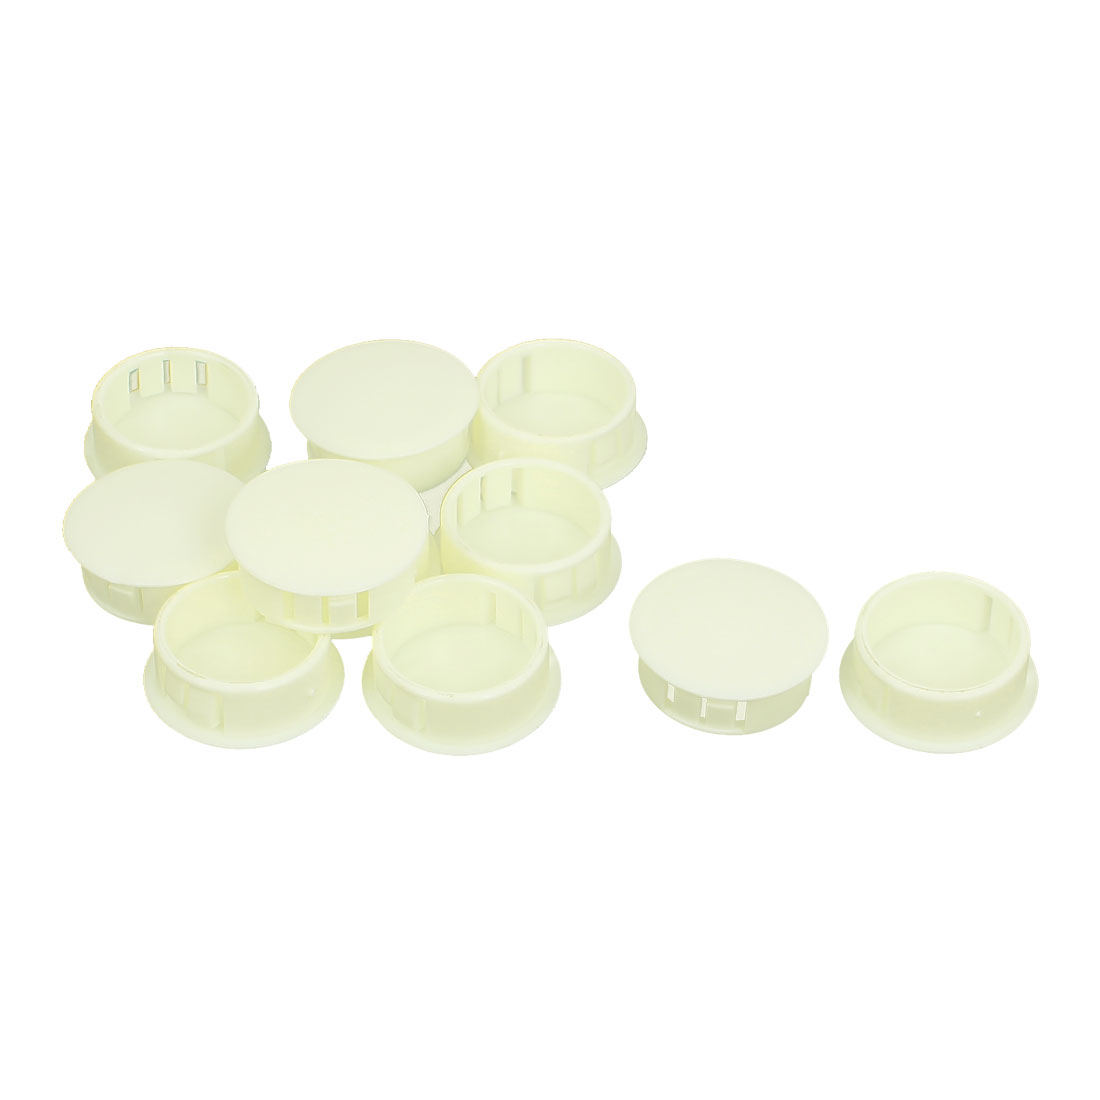 10Pcs SKT-25 24.7mm Insulated Off White Plastic Snap in Mount Domed Blank Lock Hole Cover Harness Fastener